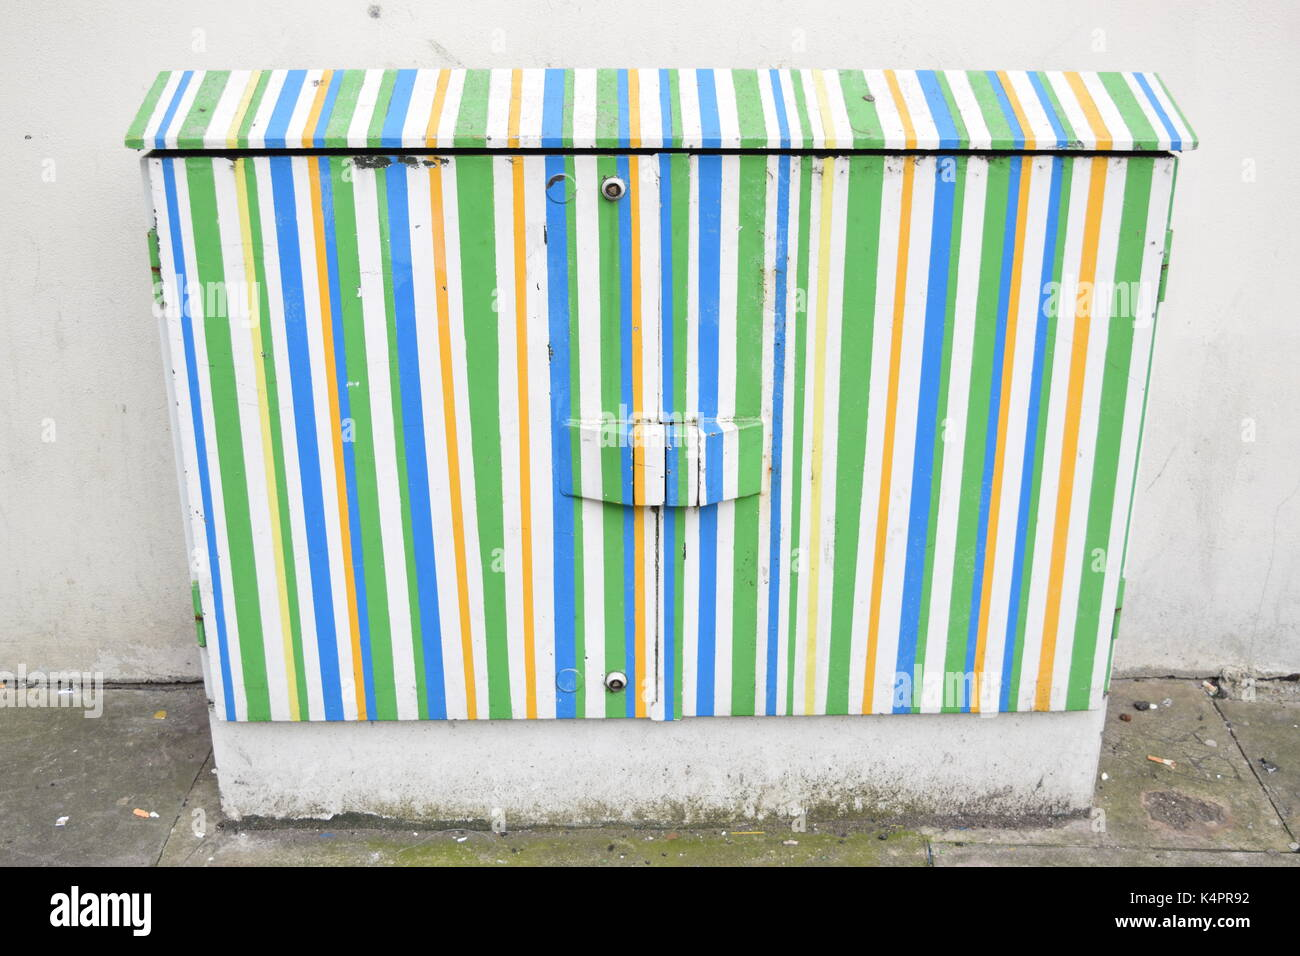 Electric meter painted outdoors - Stock Image